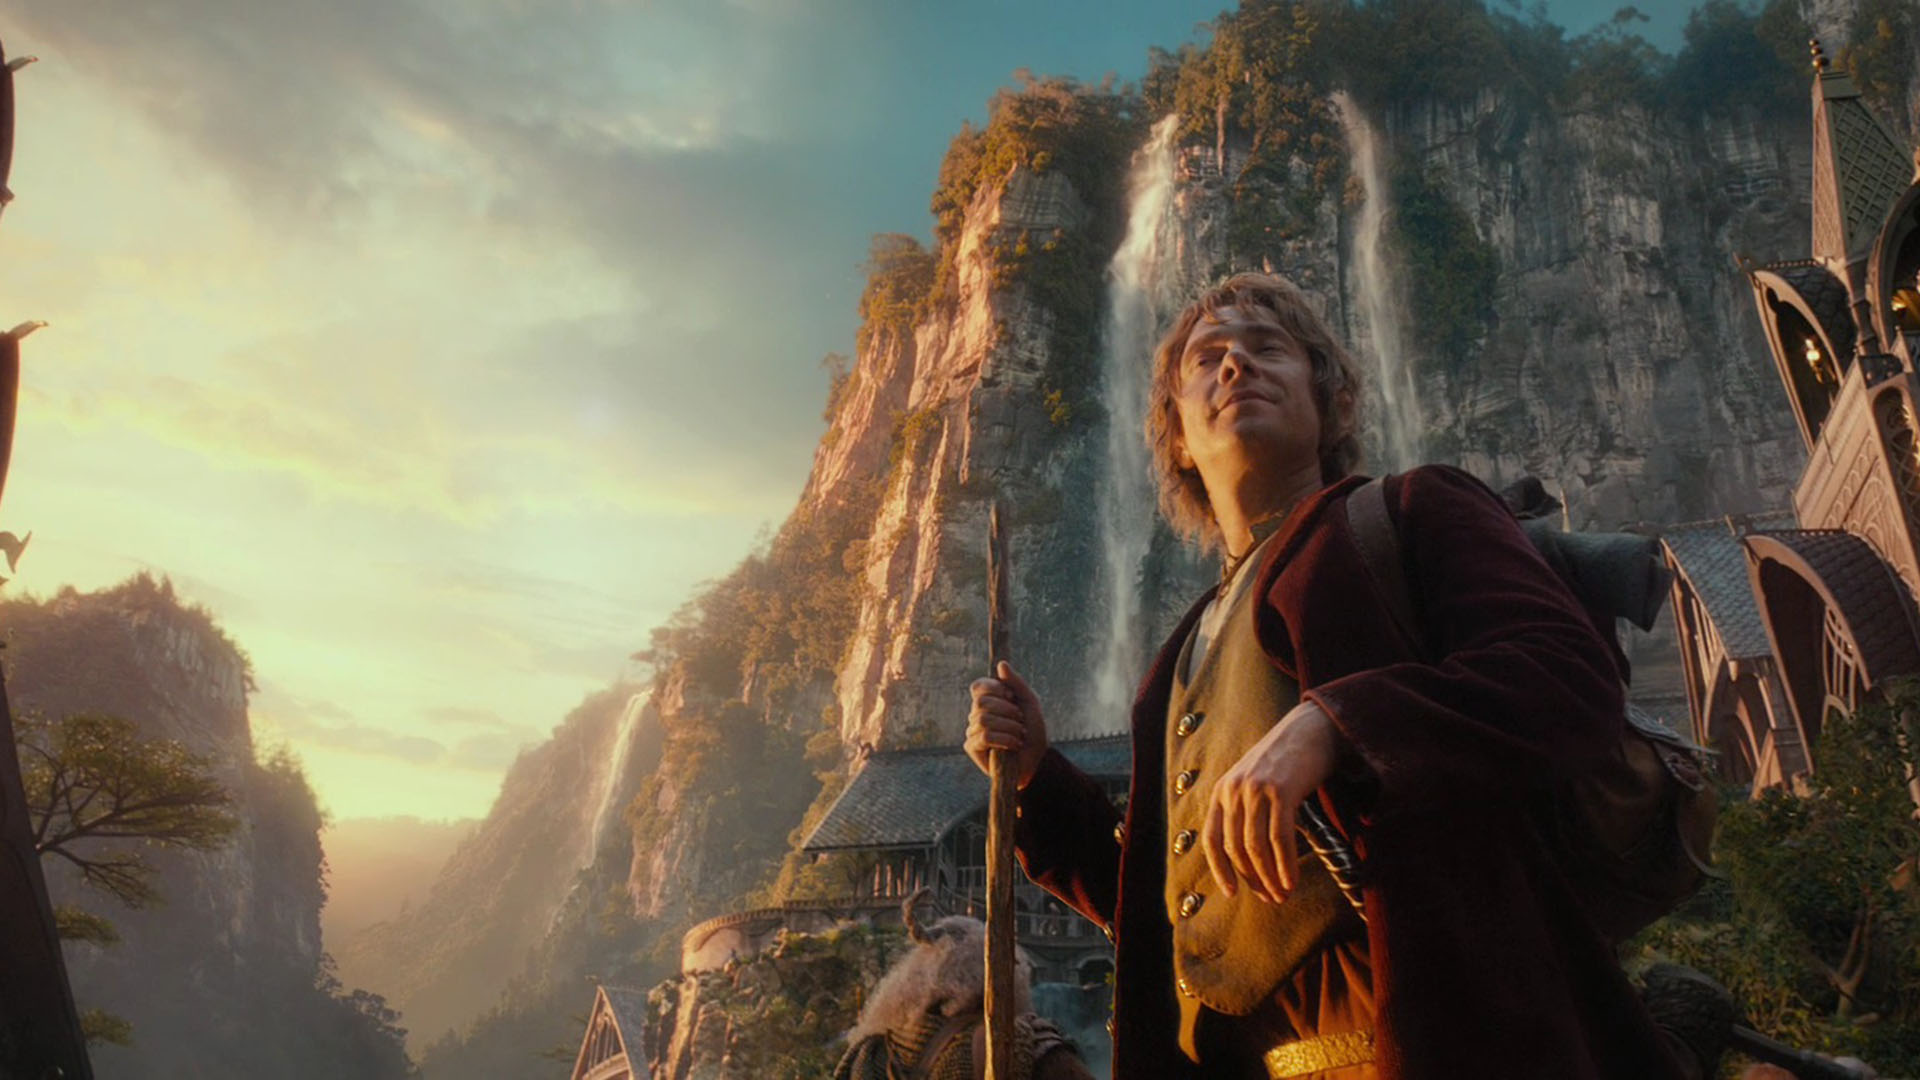 The Hobbit Wallpaper 1920x1080 1920x1080 desktop wallpapers 1920x1080